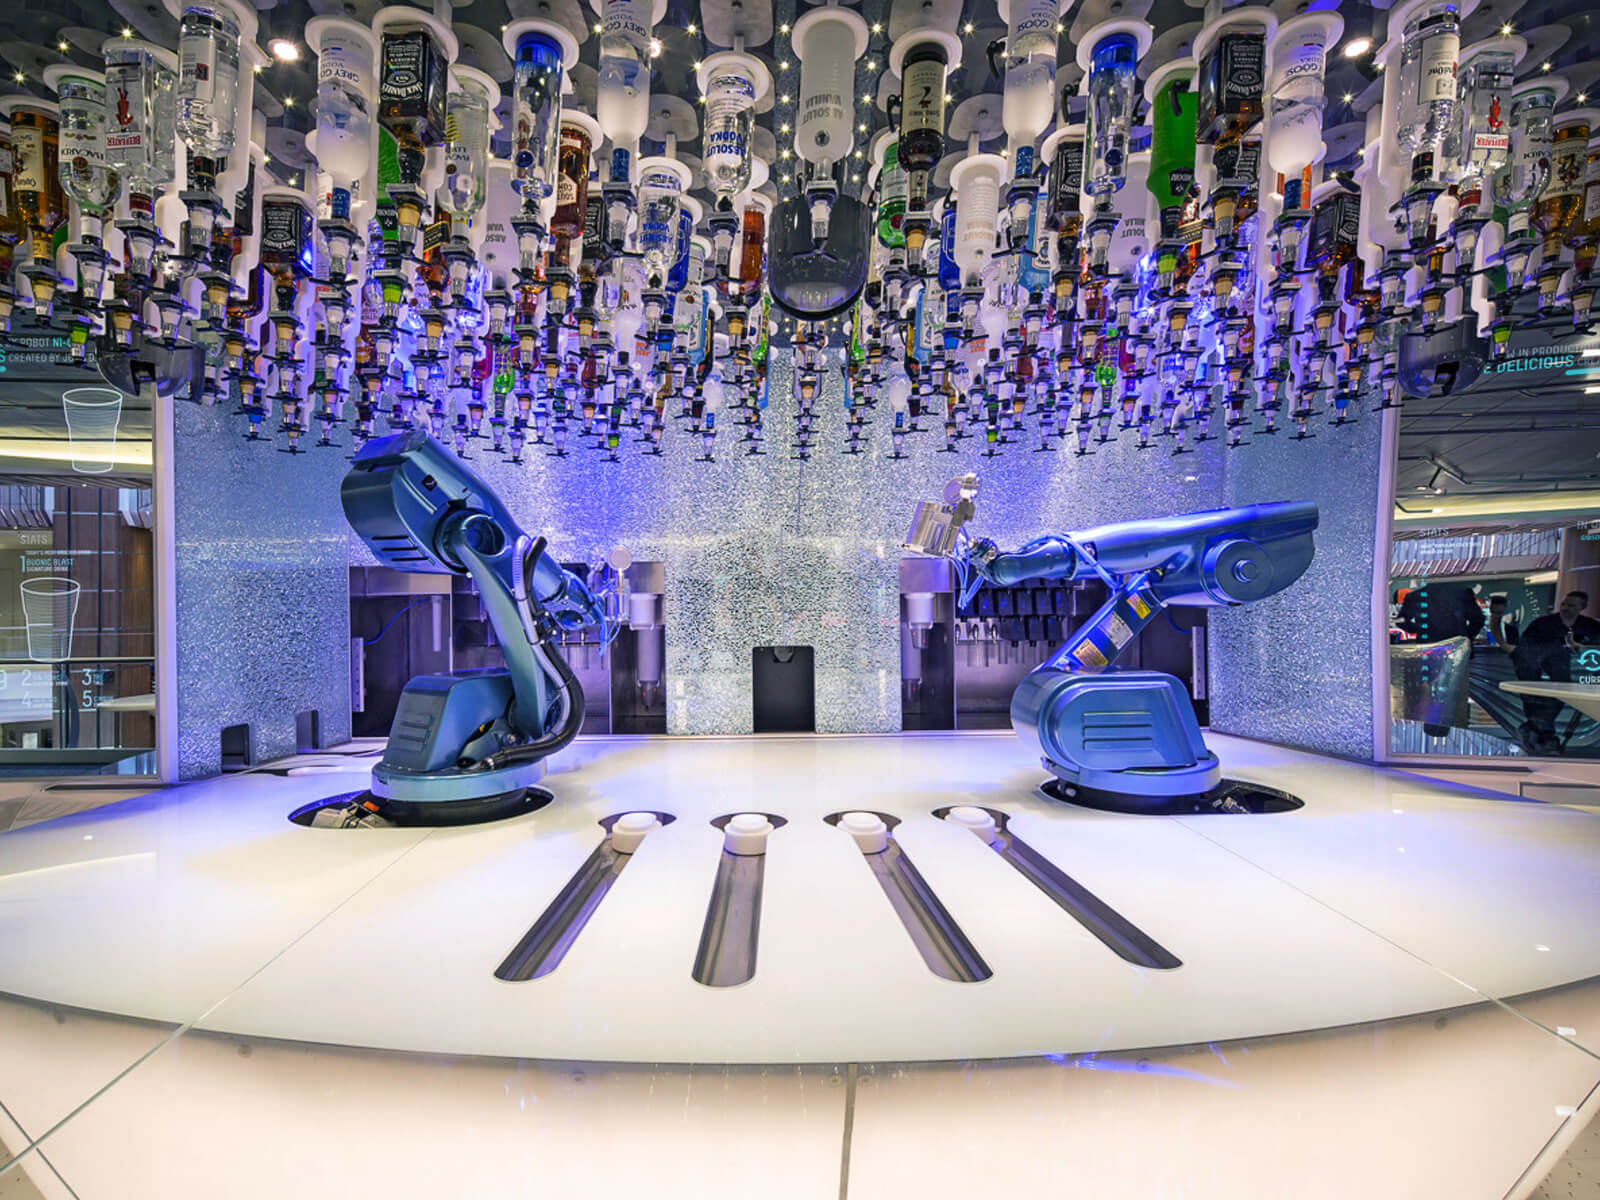 Круизный лайнер Ovation of the Seas - Бар с роботами Bionic Bar